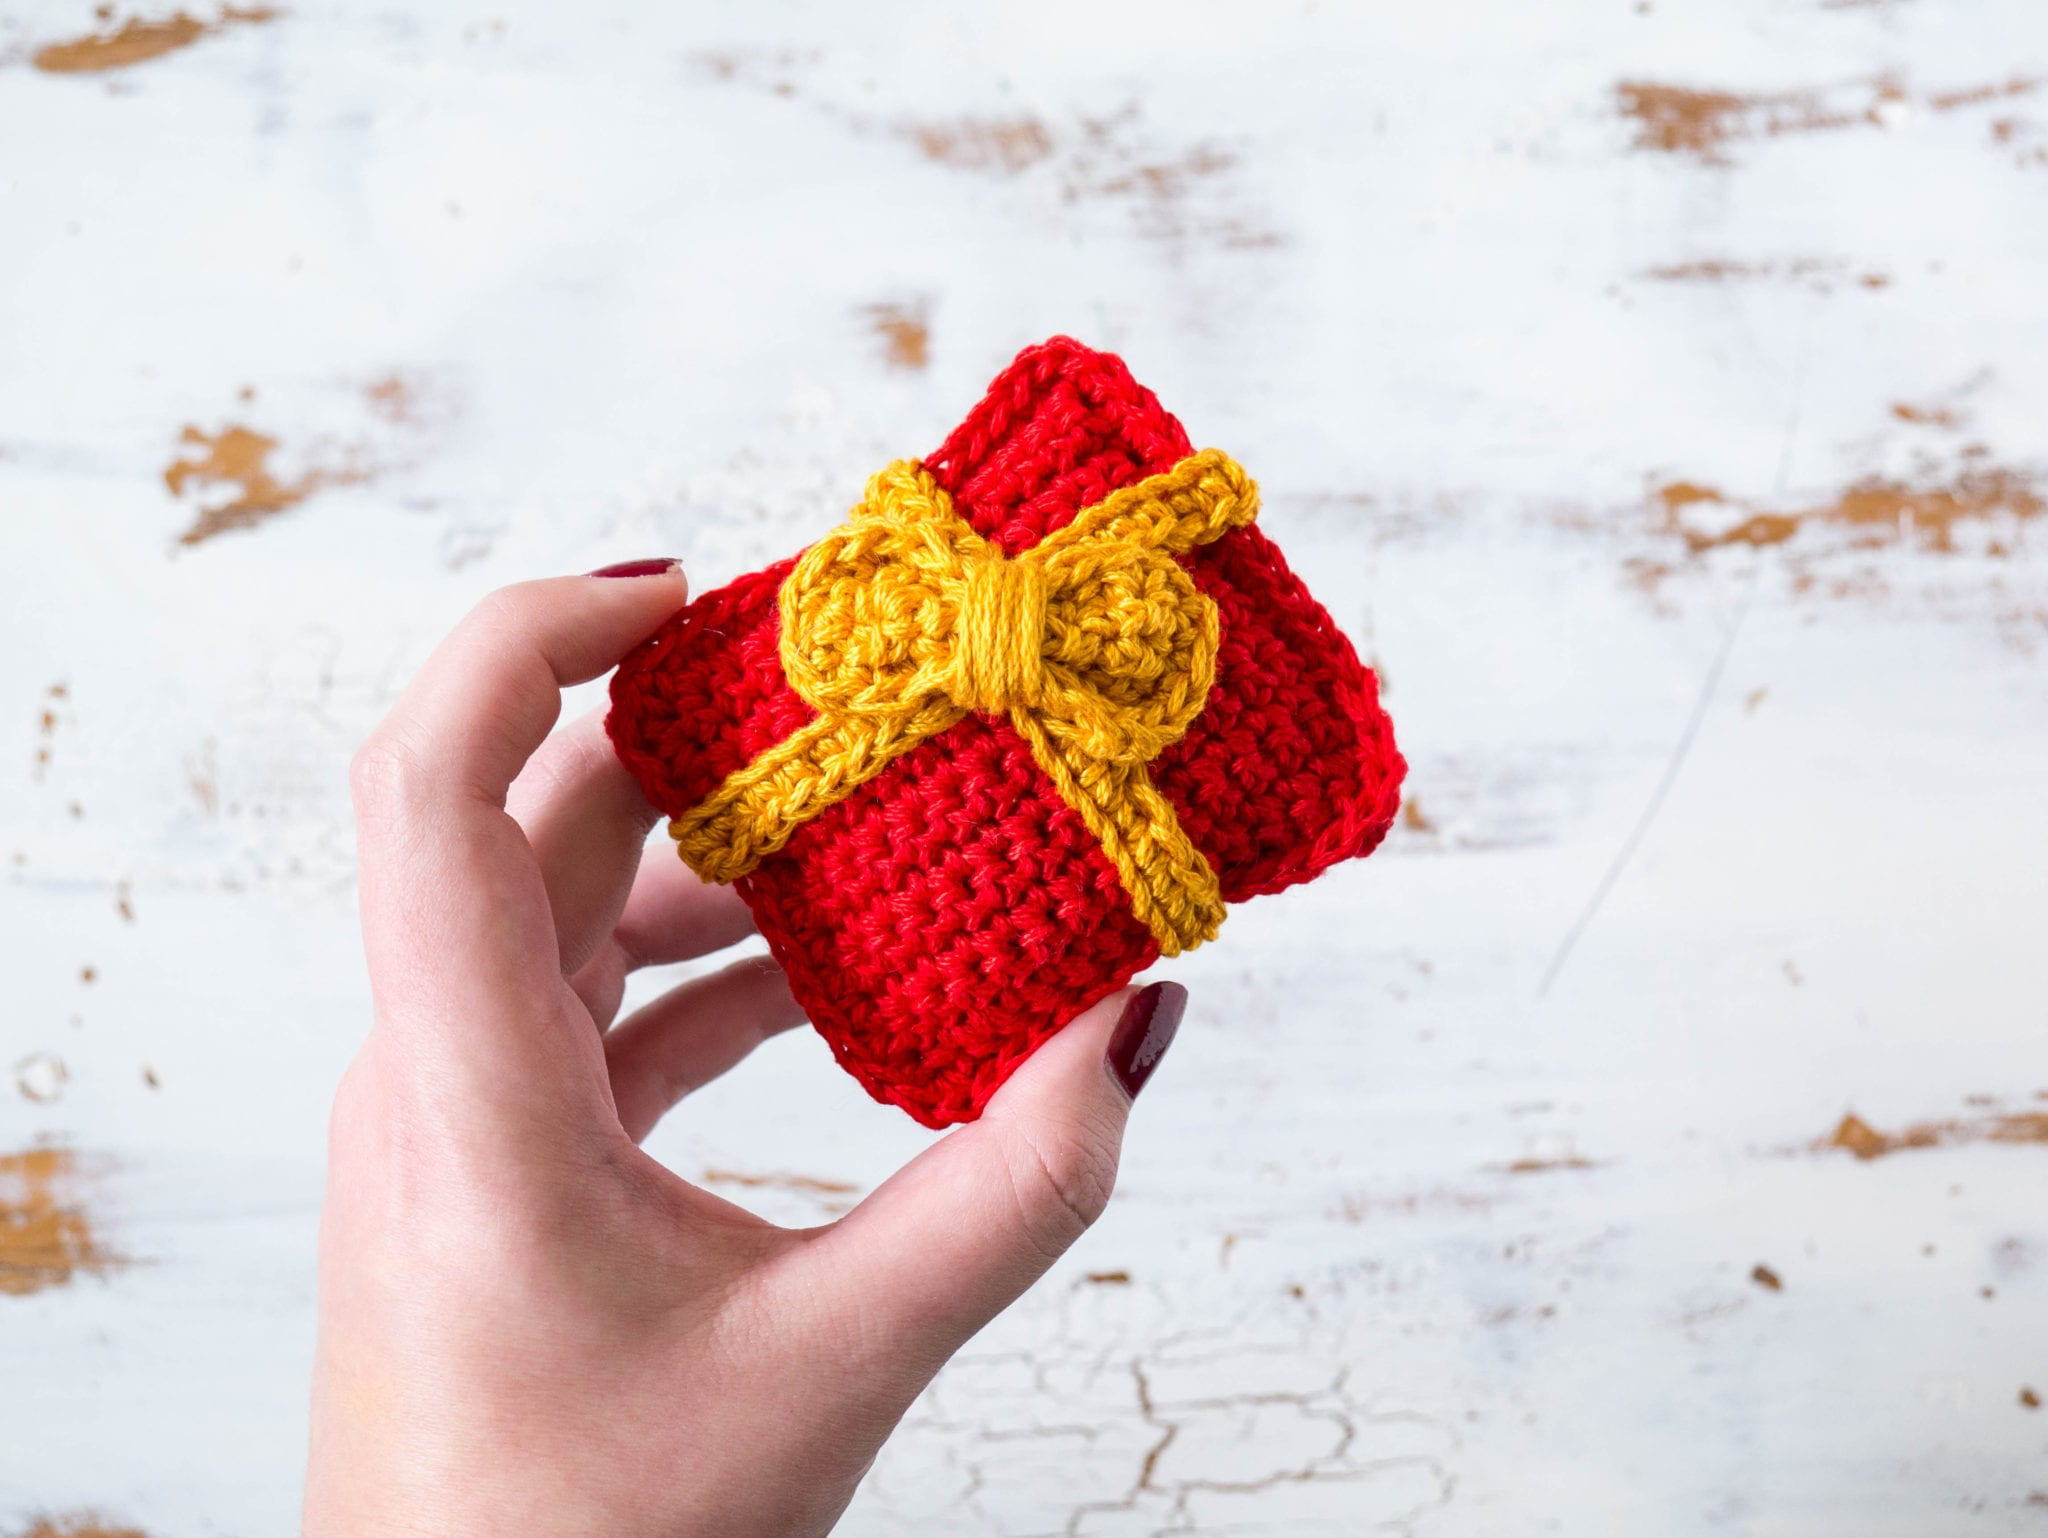 Crochet Present Christmas Ornament - Sewrella